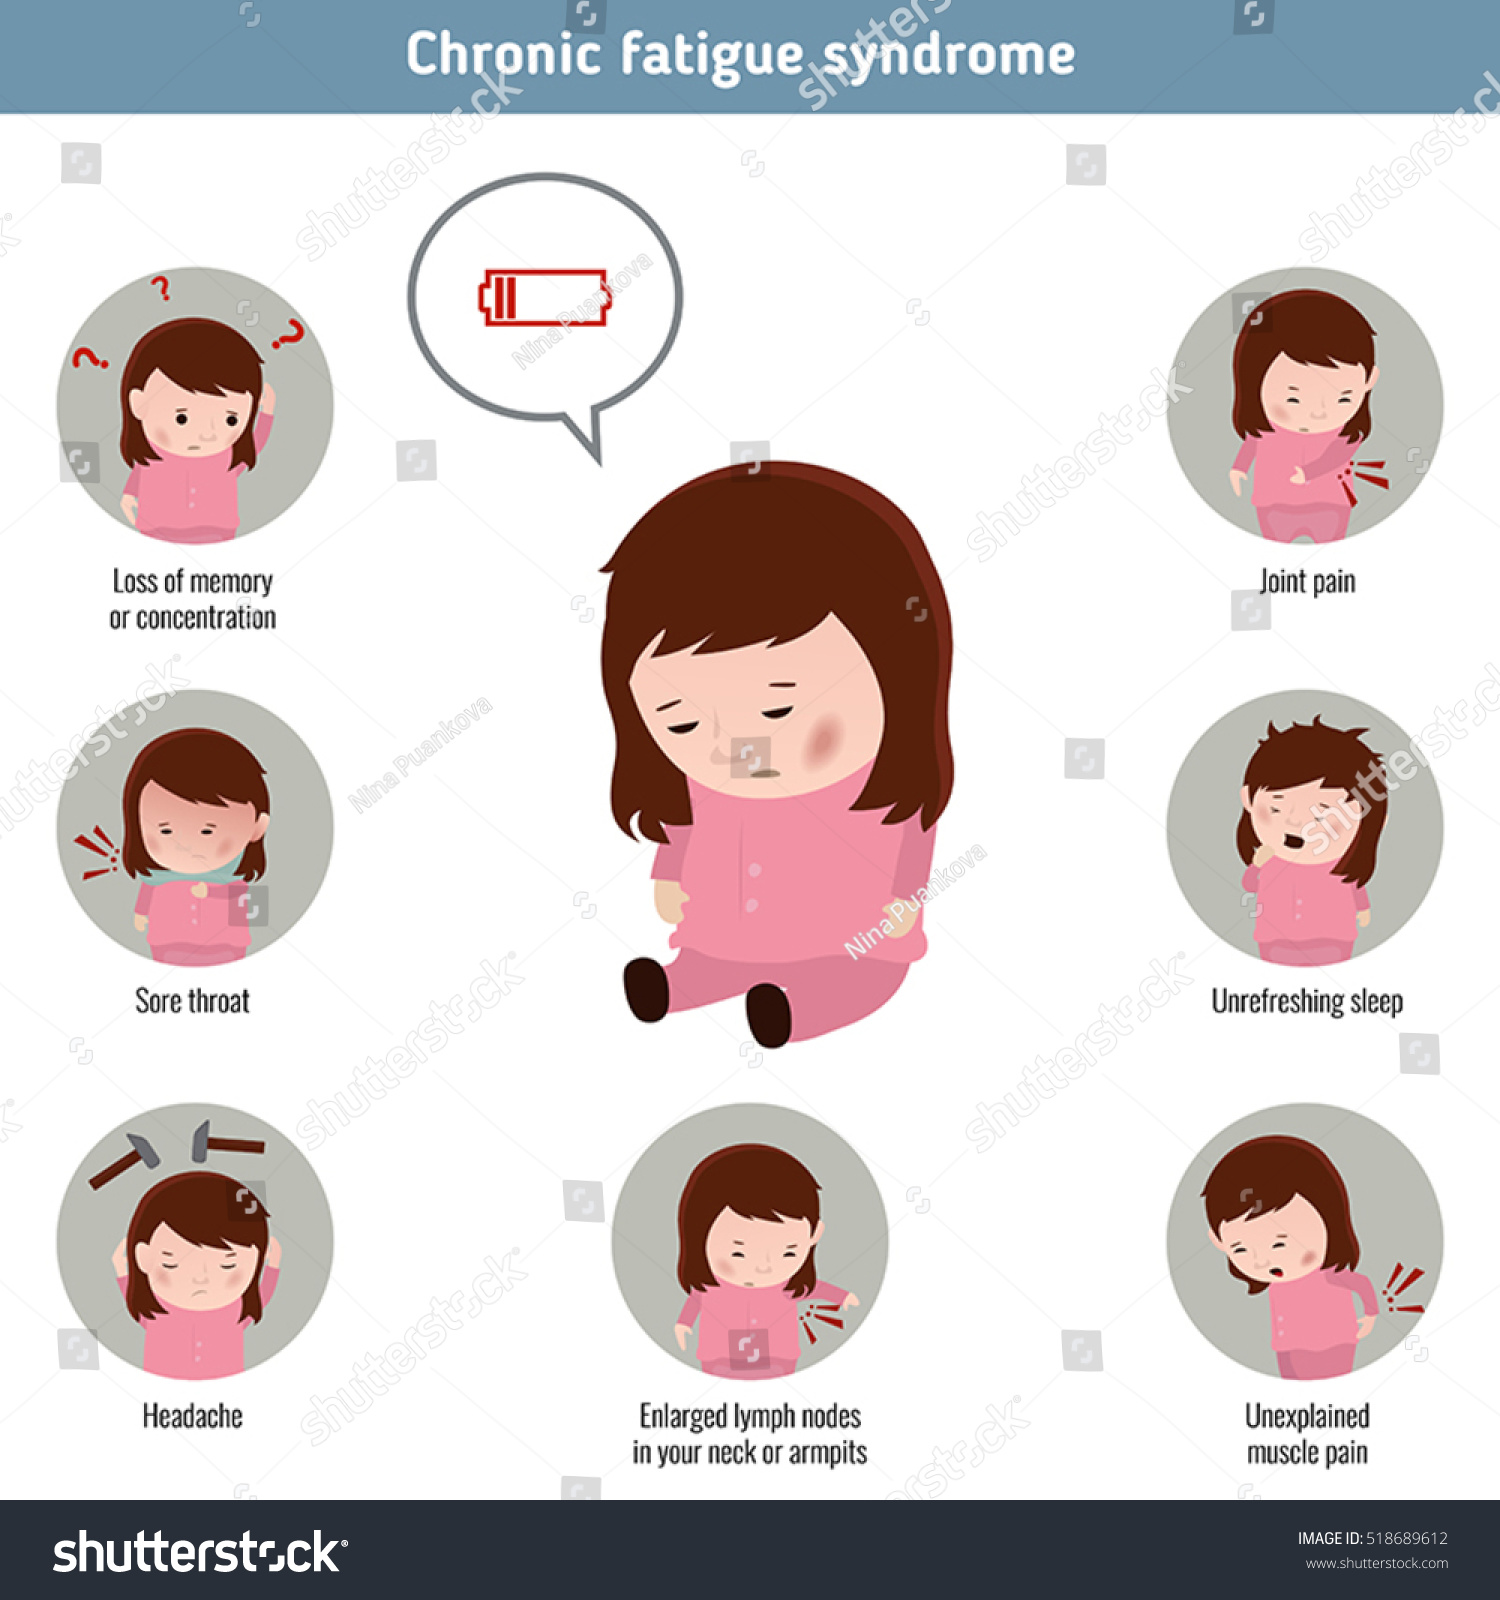 chronic fatigue syndrome symptoms infographic element stock vector 518689612 shutterstock. Black Bedroom Furniture Sets. Home Design Ideas